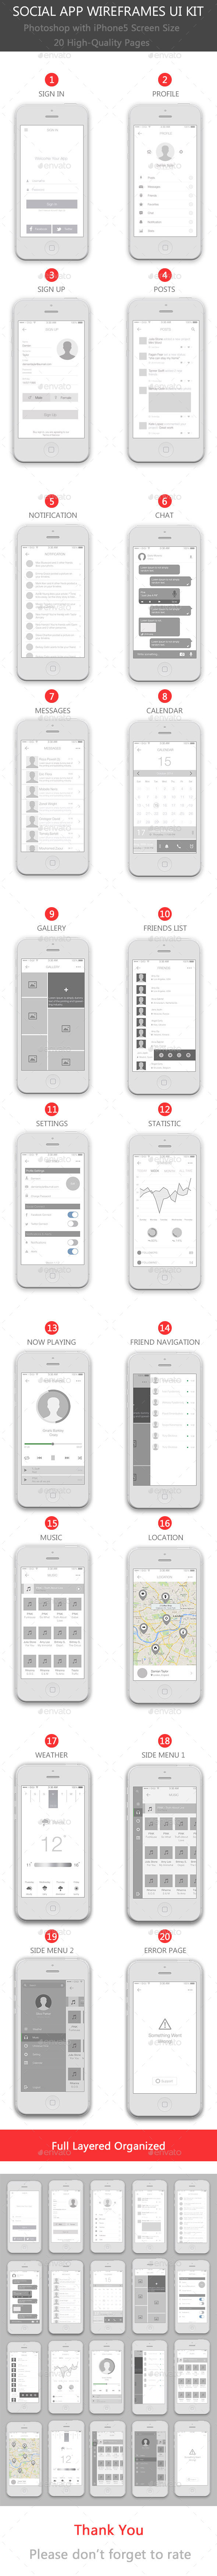 GraphicRiver Social App Wireframes UI Kit 11182243